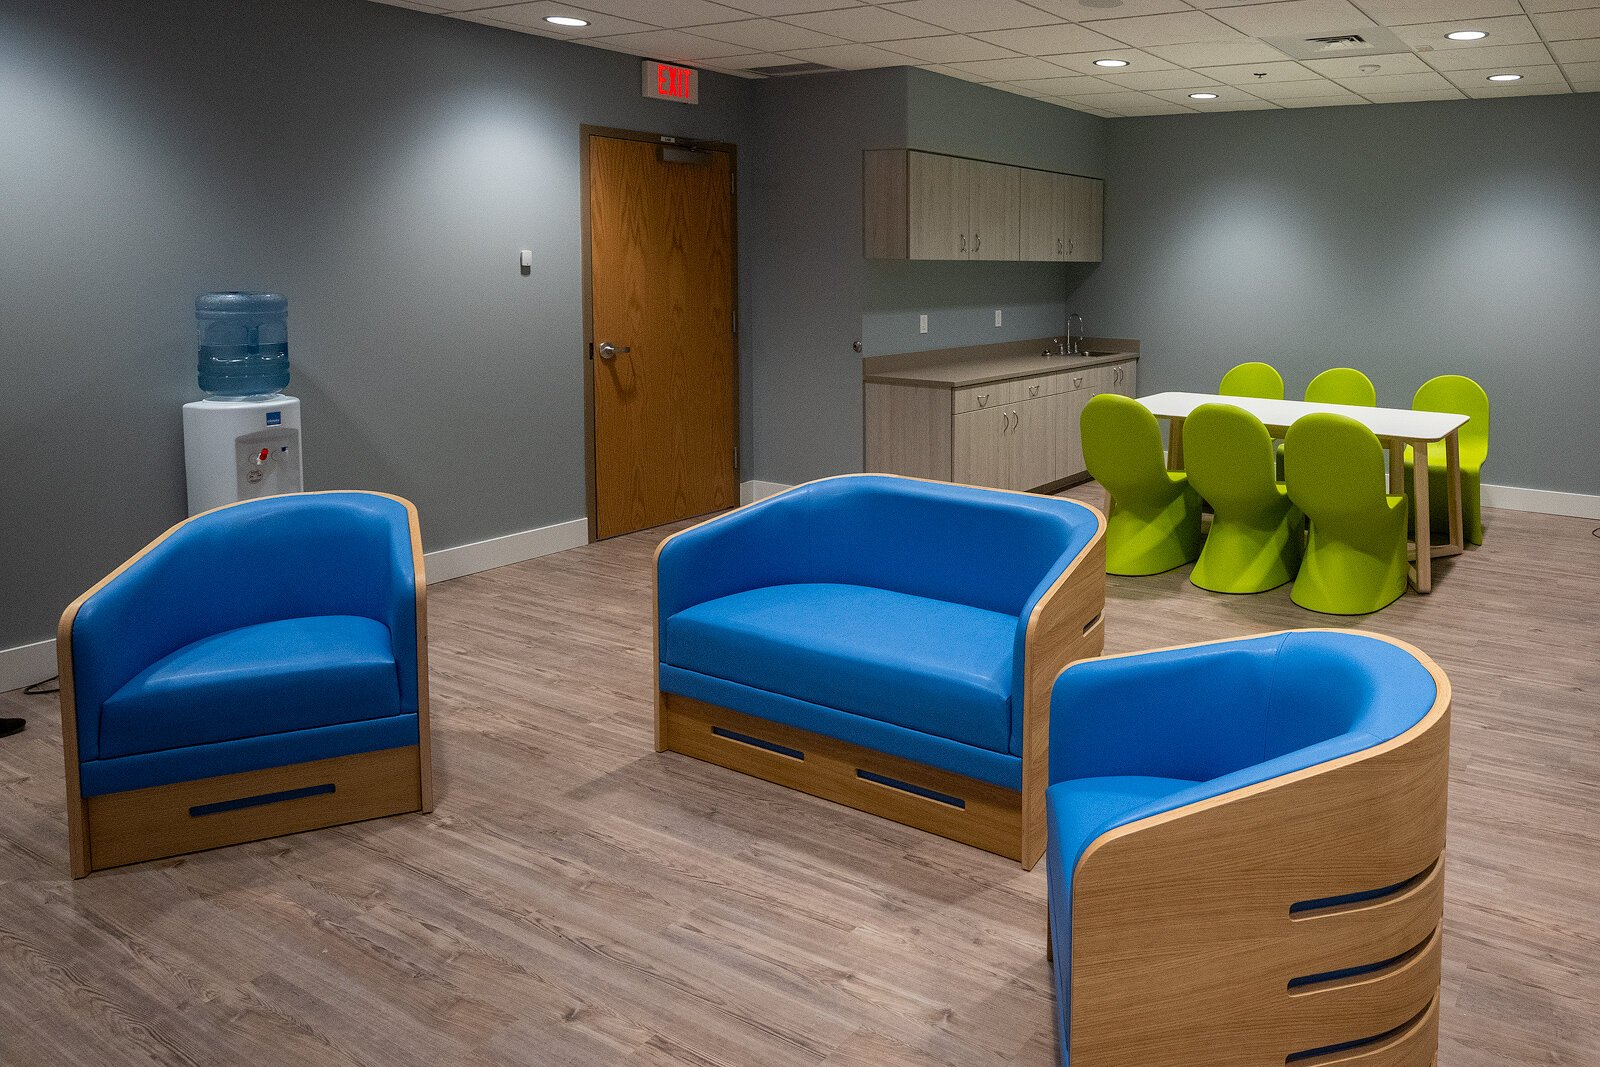 The 23-hour crisis stabilization unit at LifeWays Community Mental Health's new mental health crisis service center, funded by Jackson County's mental health millage.